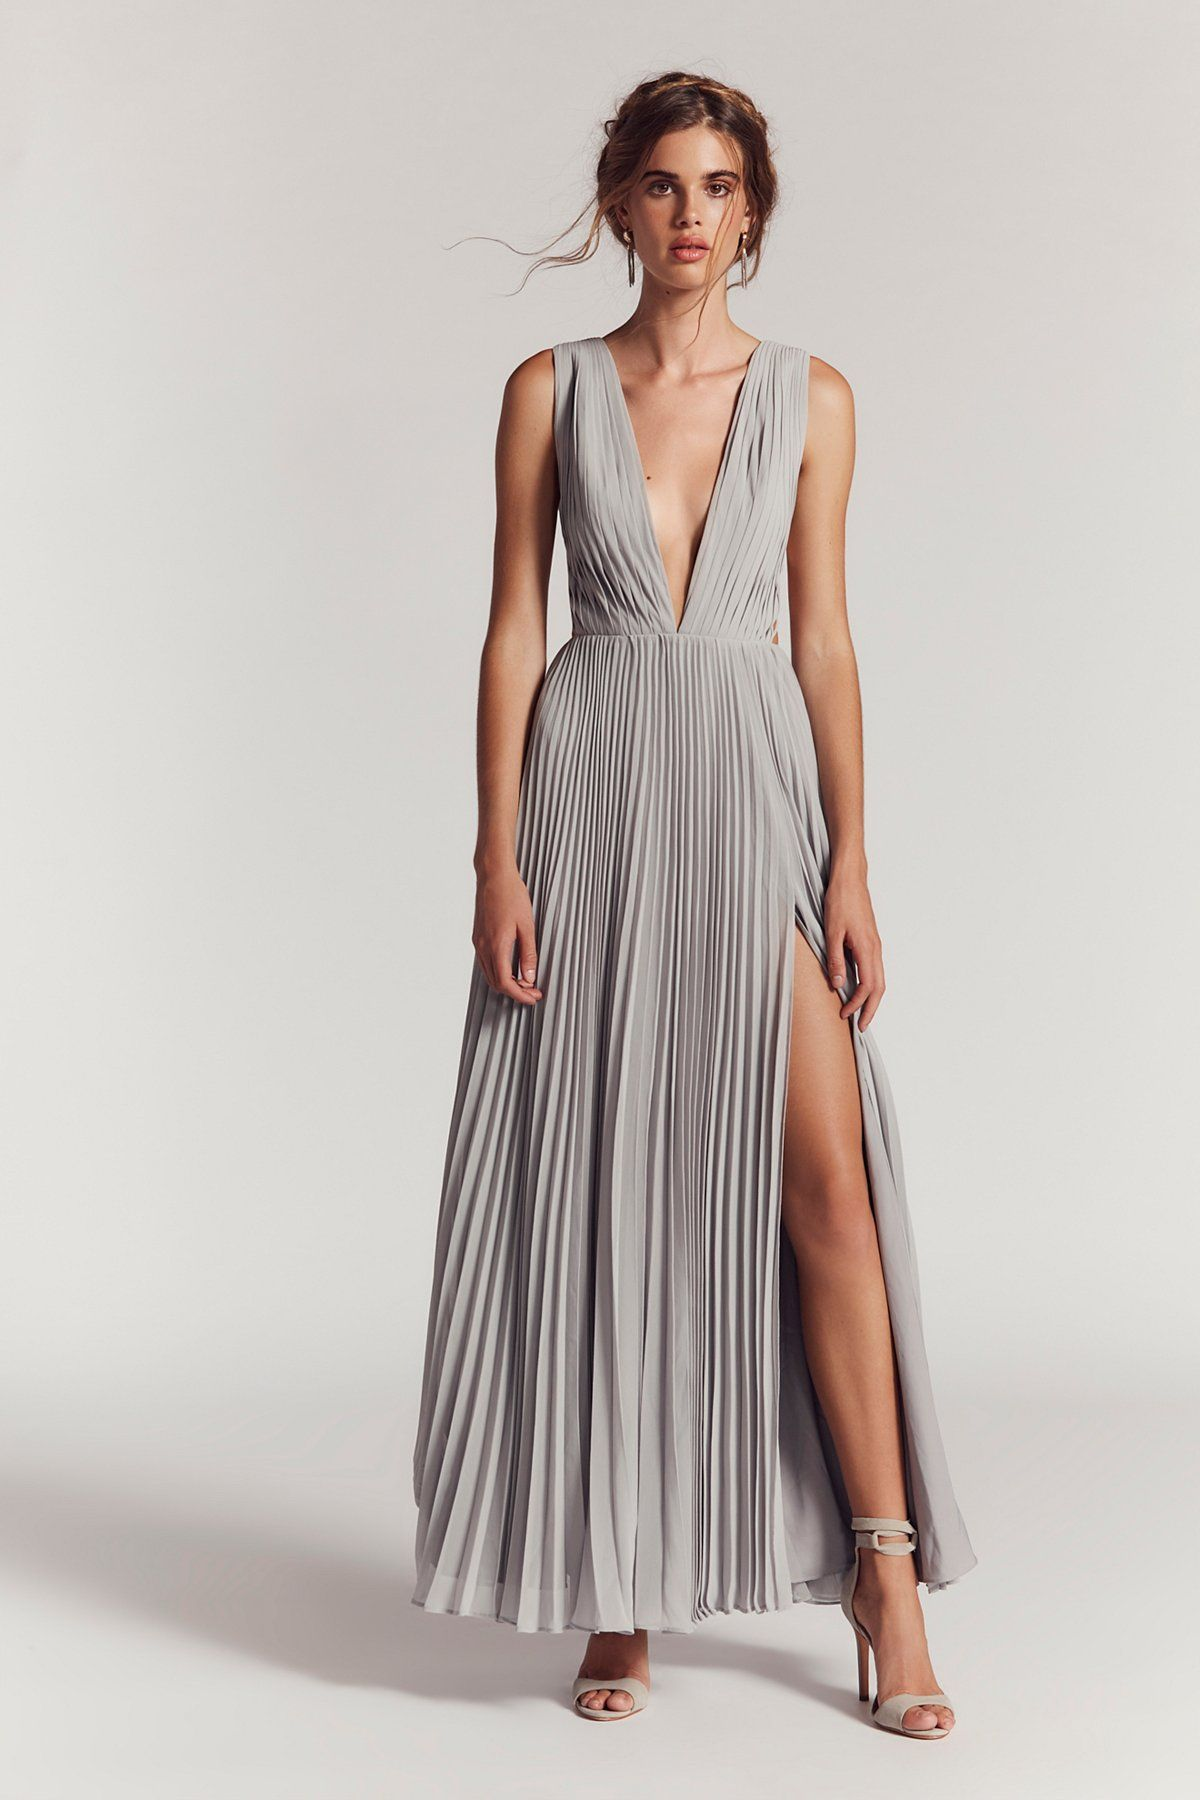 b7da216c396d5 Allegra Maxi Dress | Elegant and ethereal, this pleated maxi dress features  a plunging neckline and strappy, criss-cross details along the open sides.